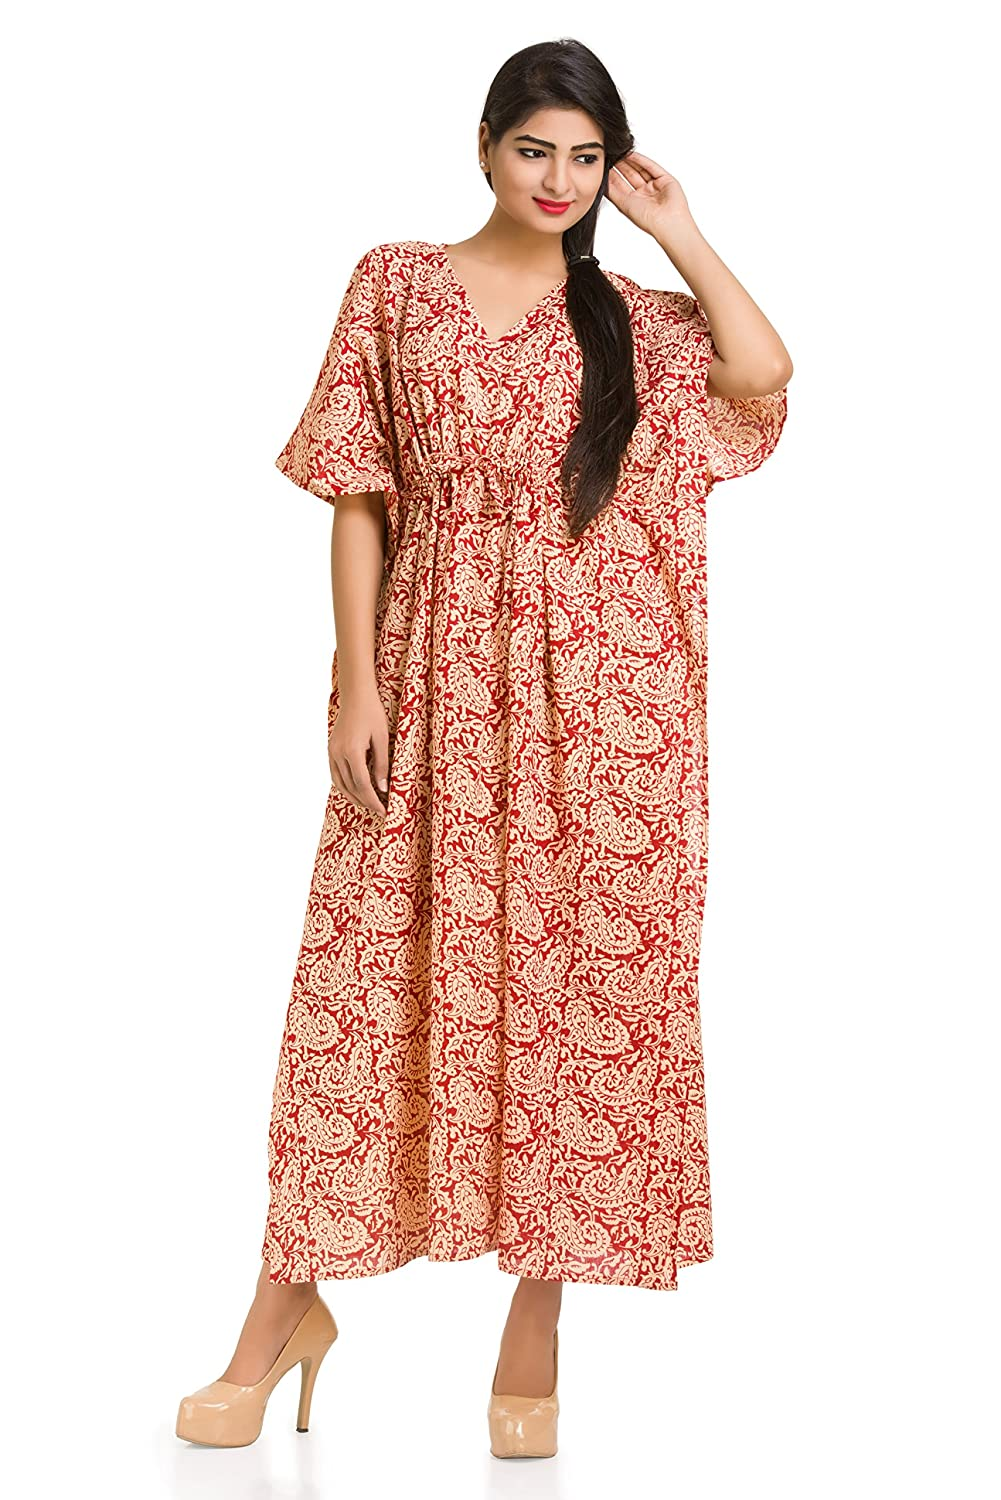 bed57a49077 Paisley Kaftan Caftan Long Dress Cotton Beach Cover Up Sleepwear Maxi Gown  Indian at Amazon Women s Clothing store